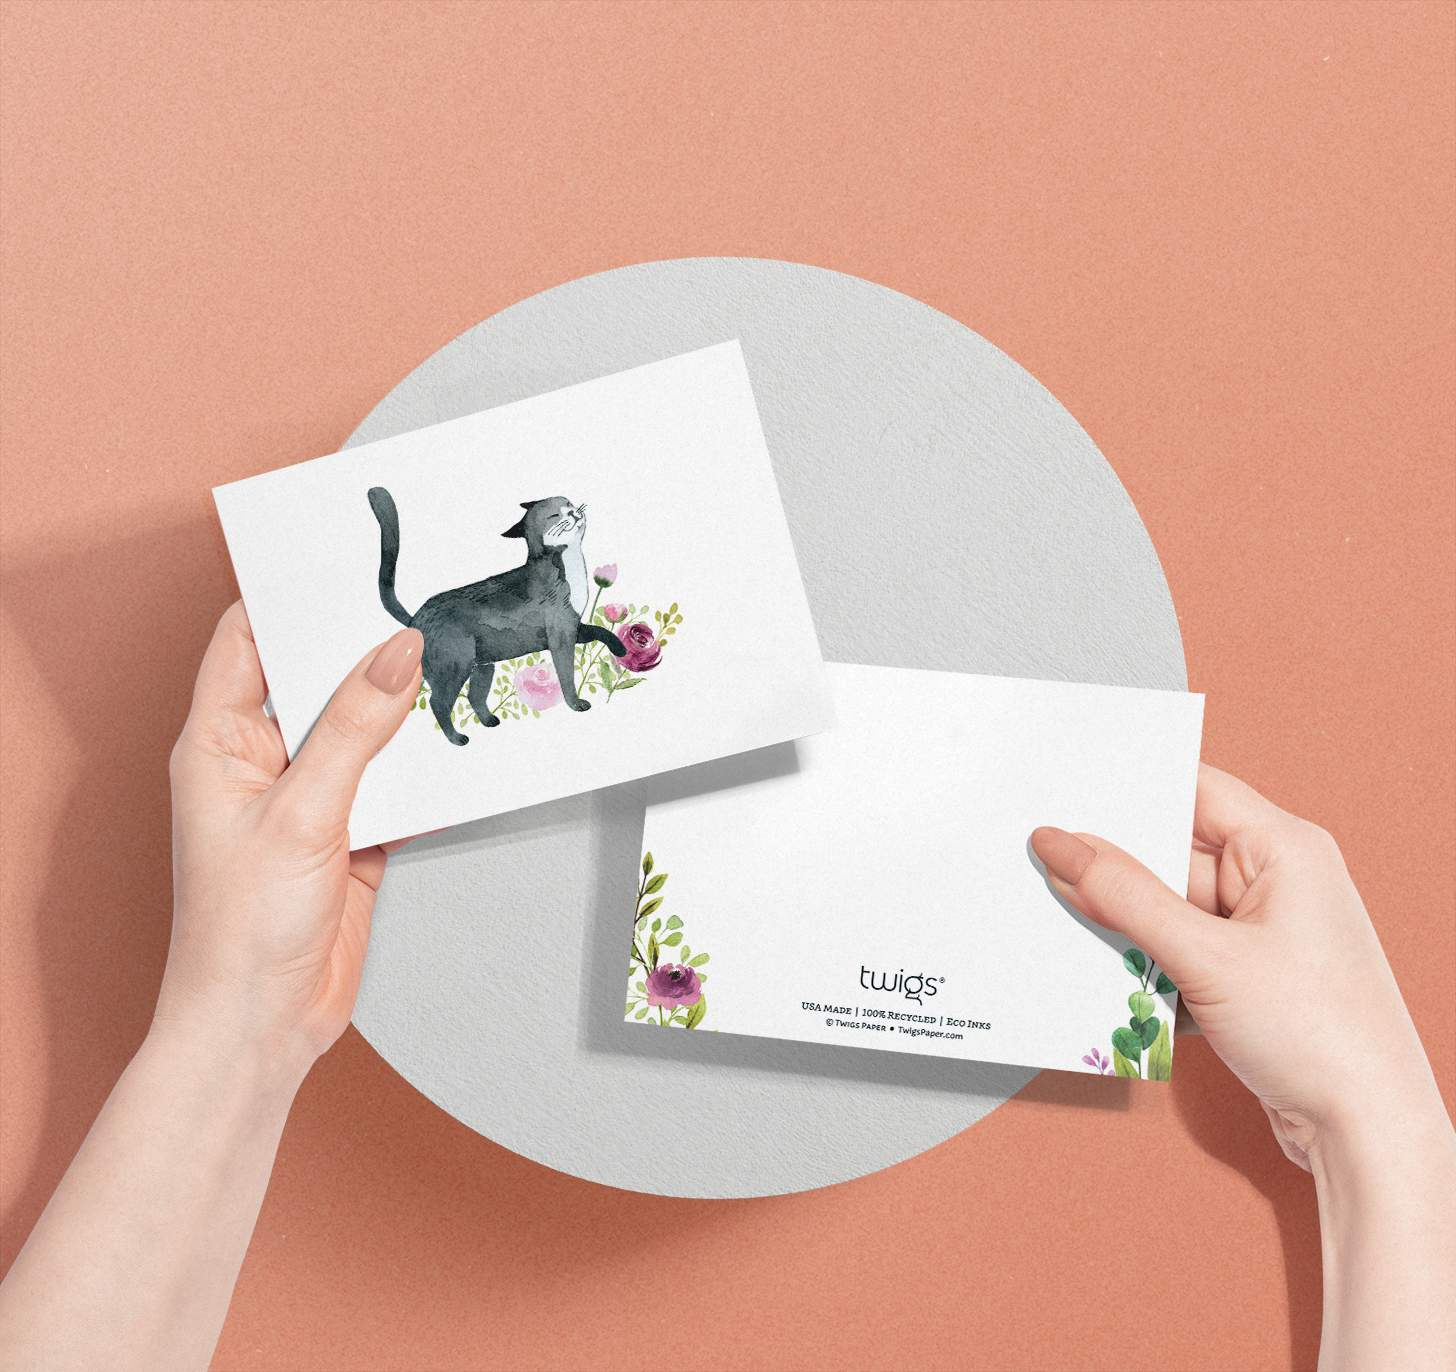 Hands holding black and white cat with flowers design card